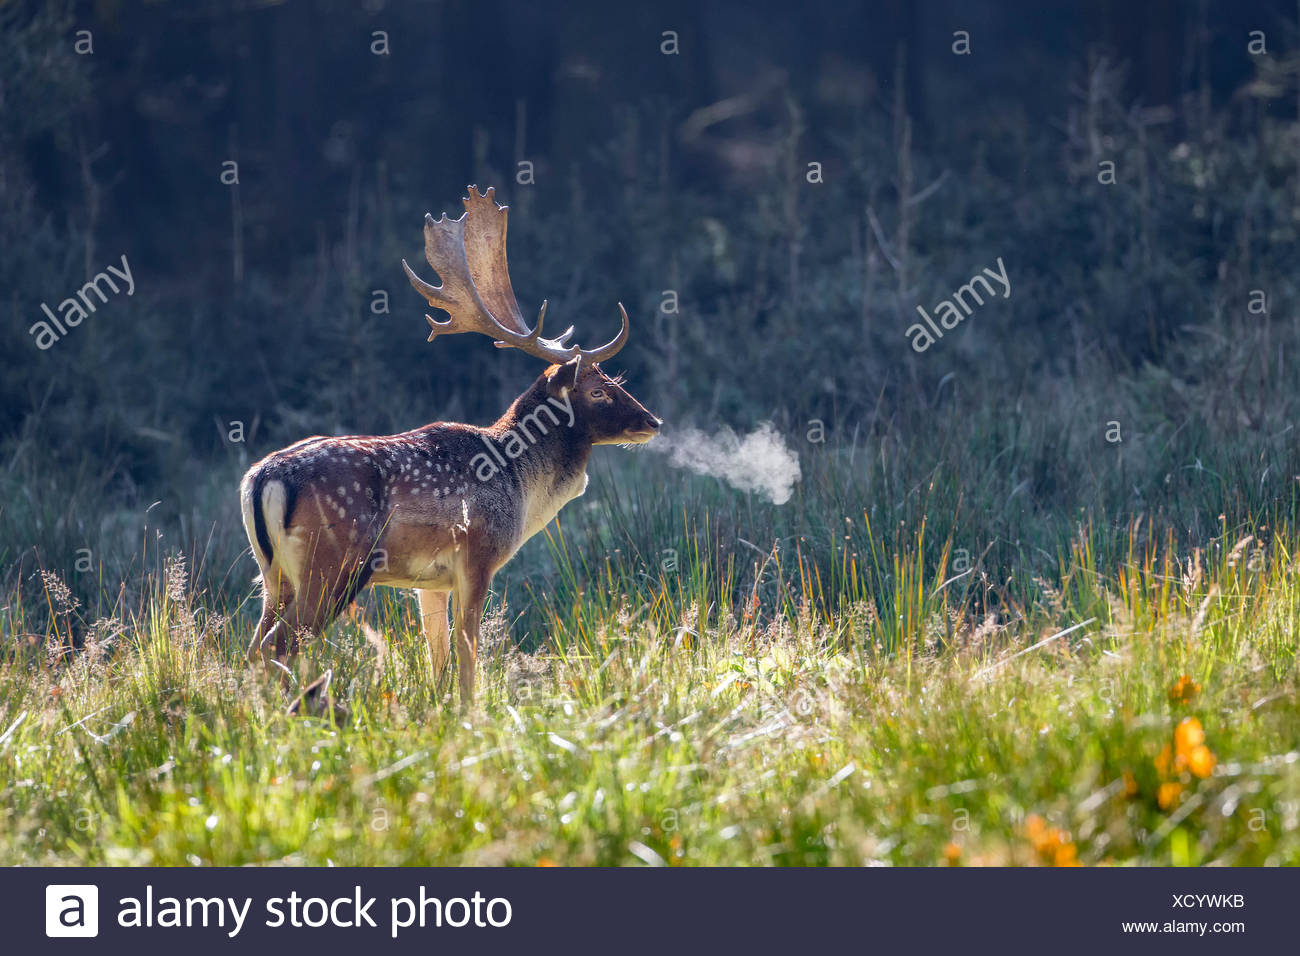 Fallow deer (Dama dama), stag in autumn, cold morning, Schaufler, Saxony, Germany - Stock Image